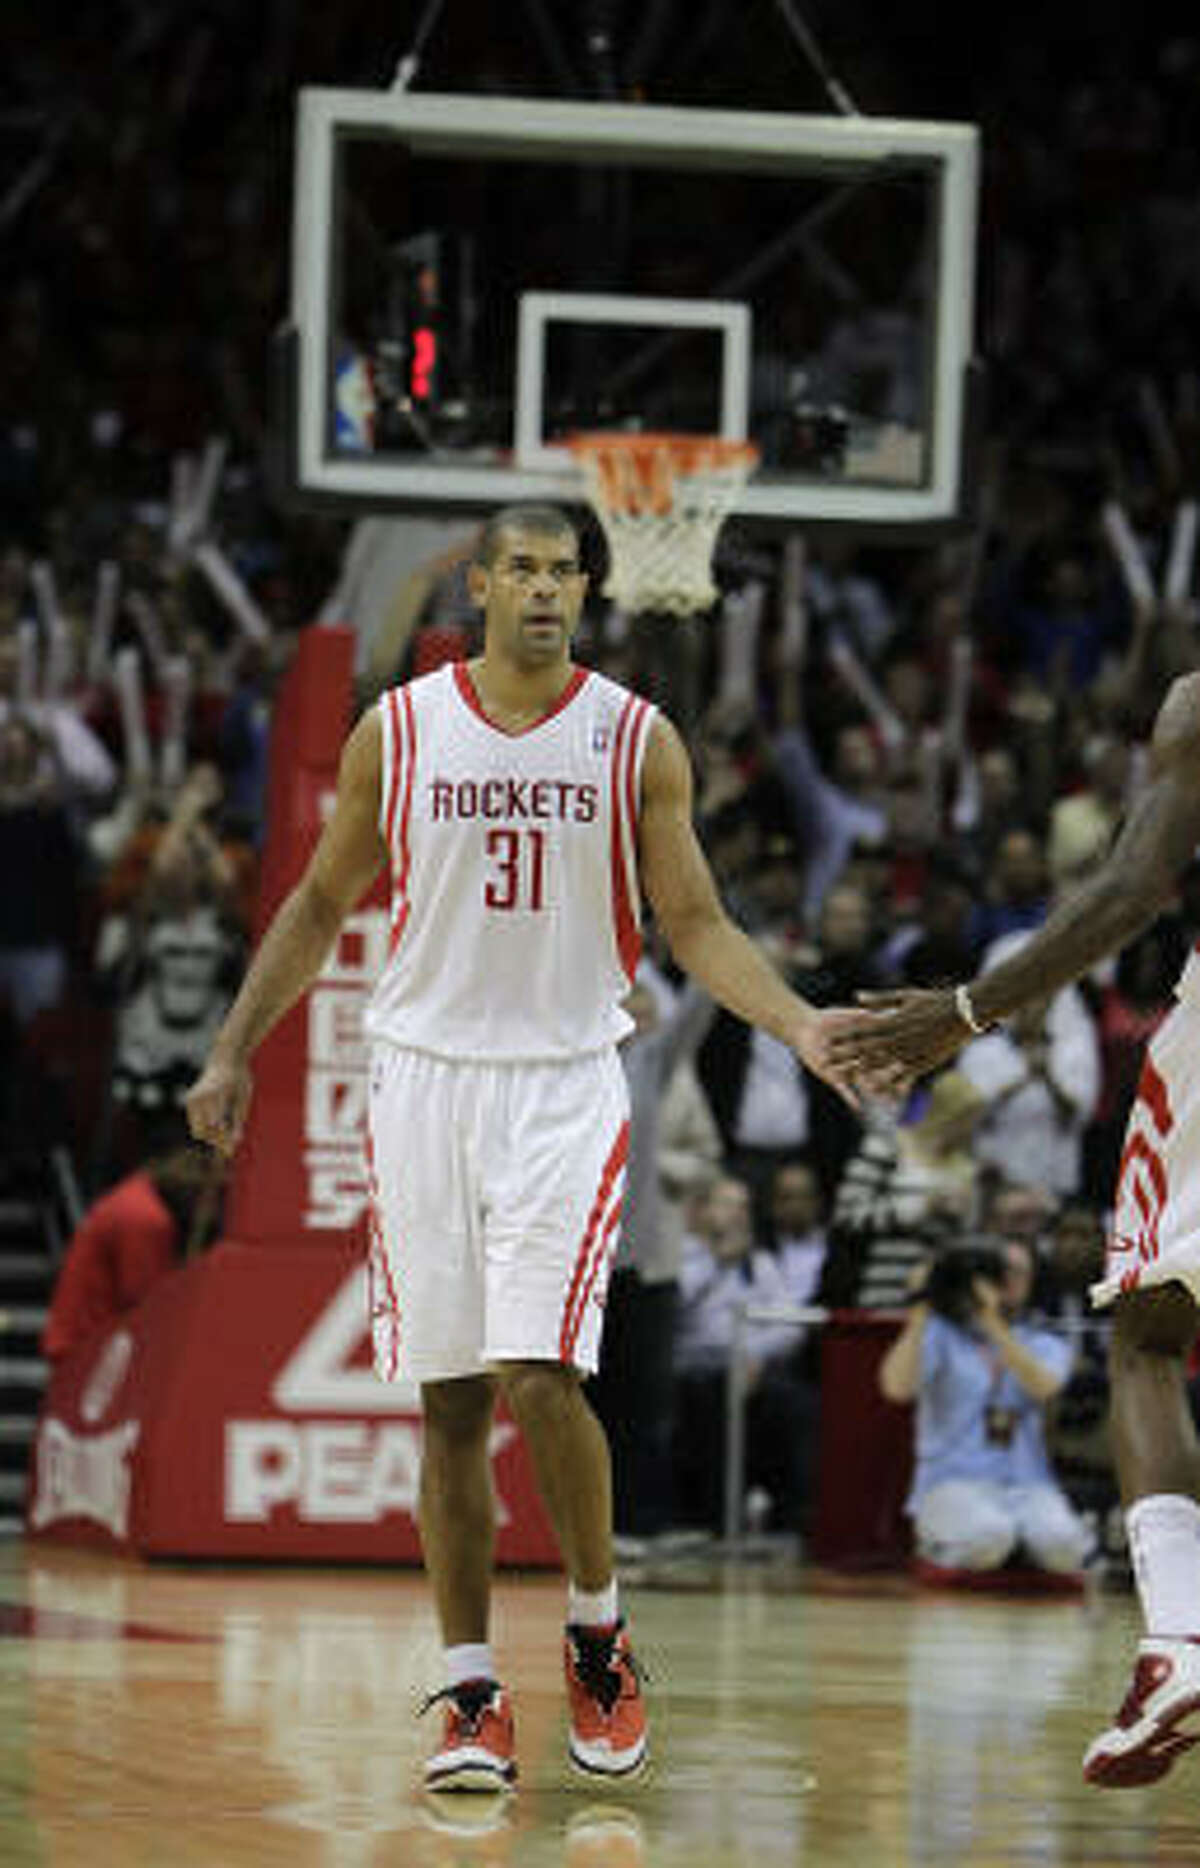 Shane Battier helped propel the Rockets past the Lakers, scoring 11 consecutive points in the final three minutes to finish with 17.